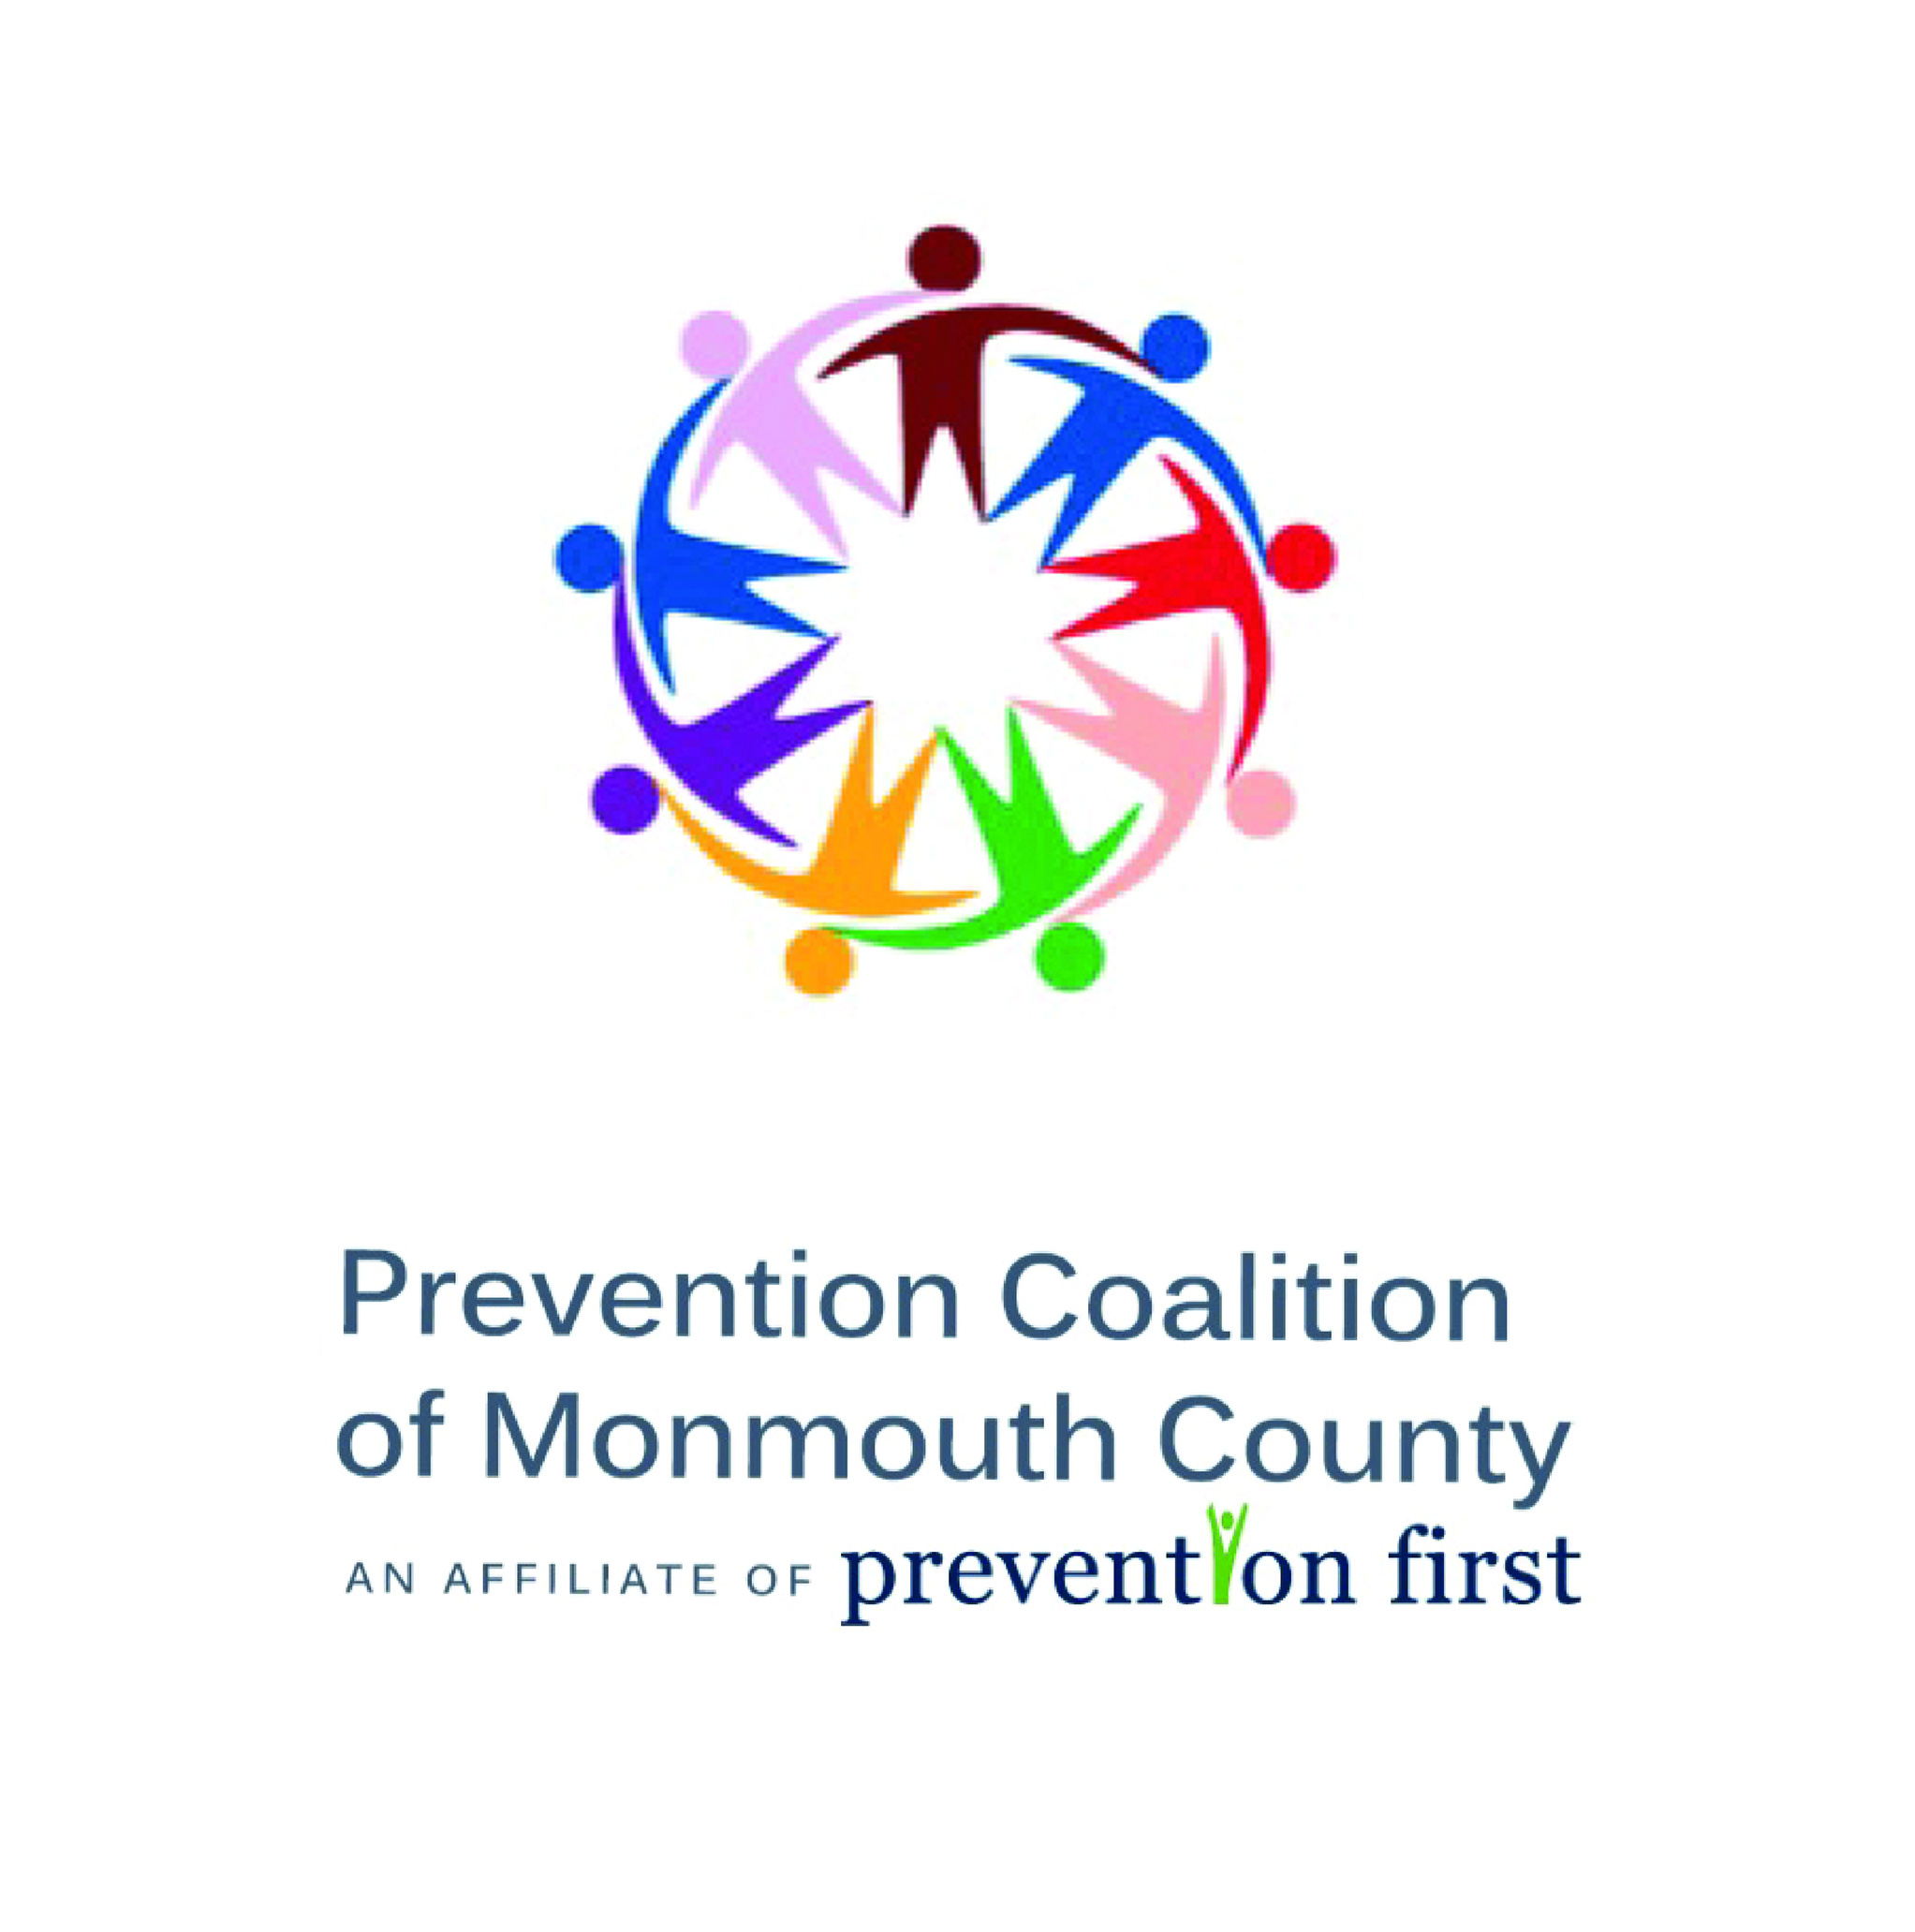 Monmouth_County